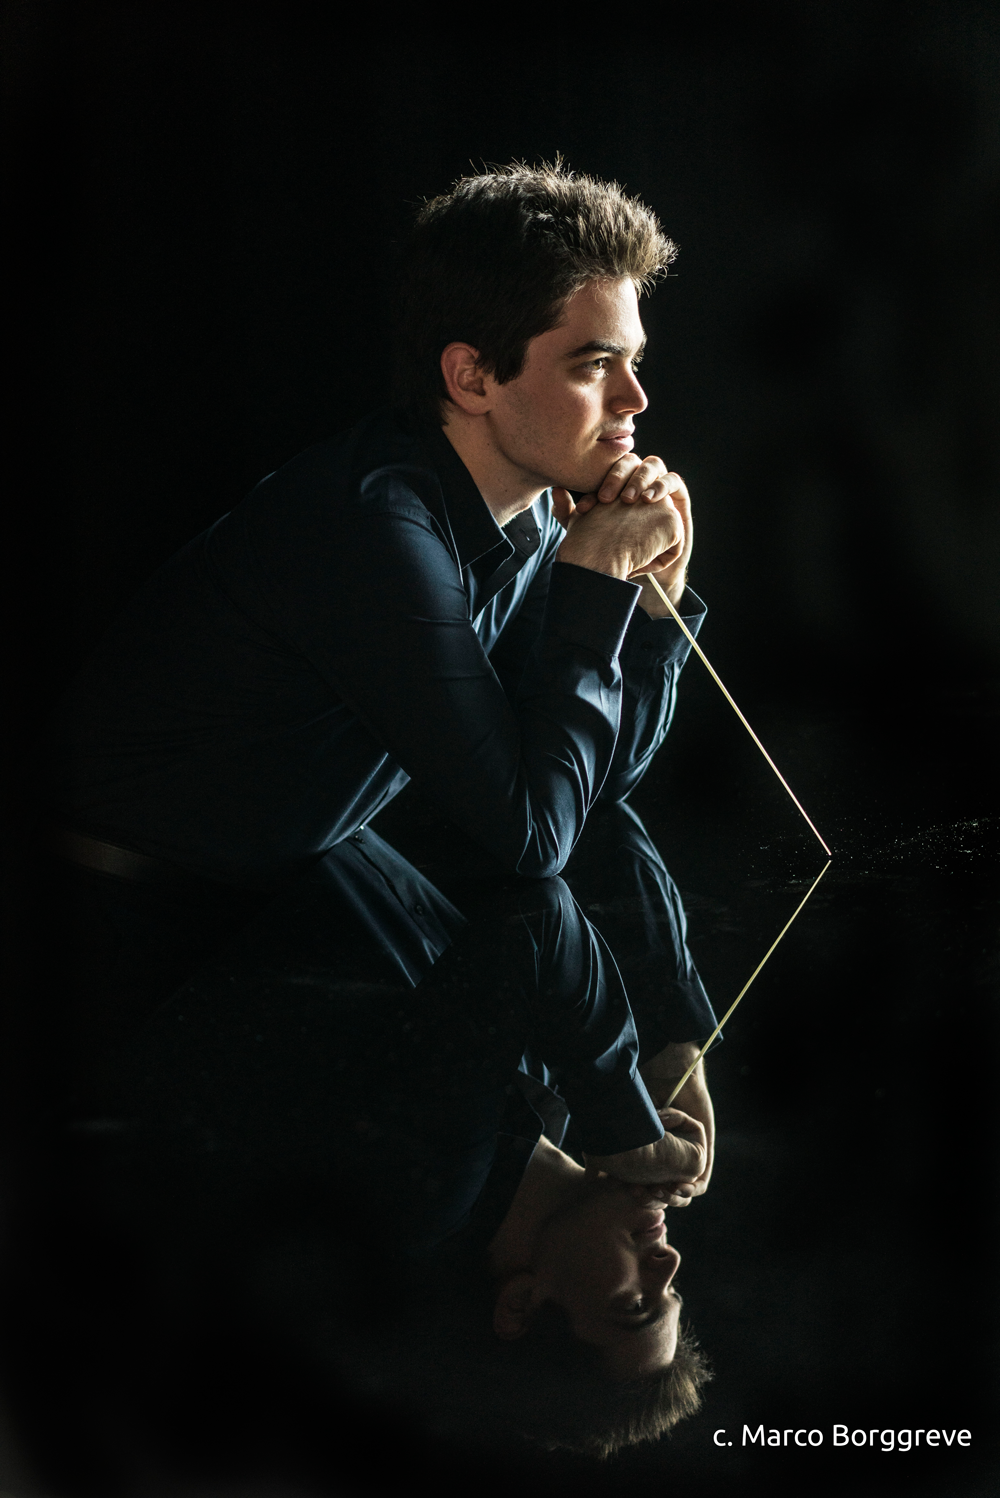 conductor looking pesive into the distance with black background and reflection